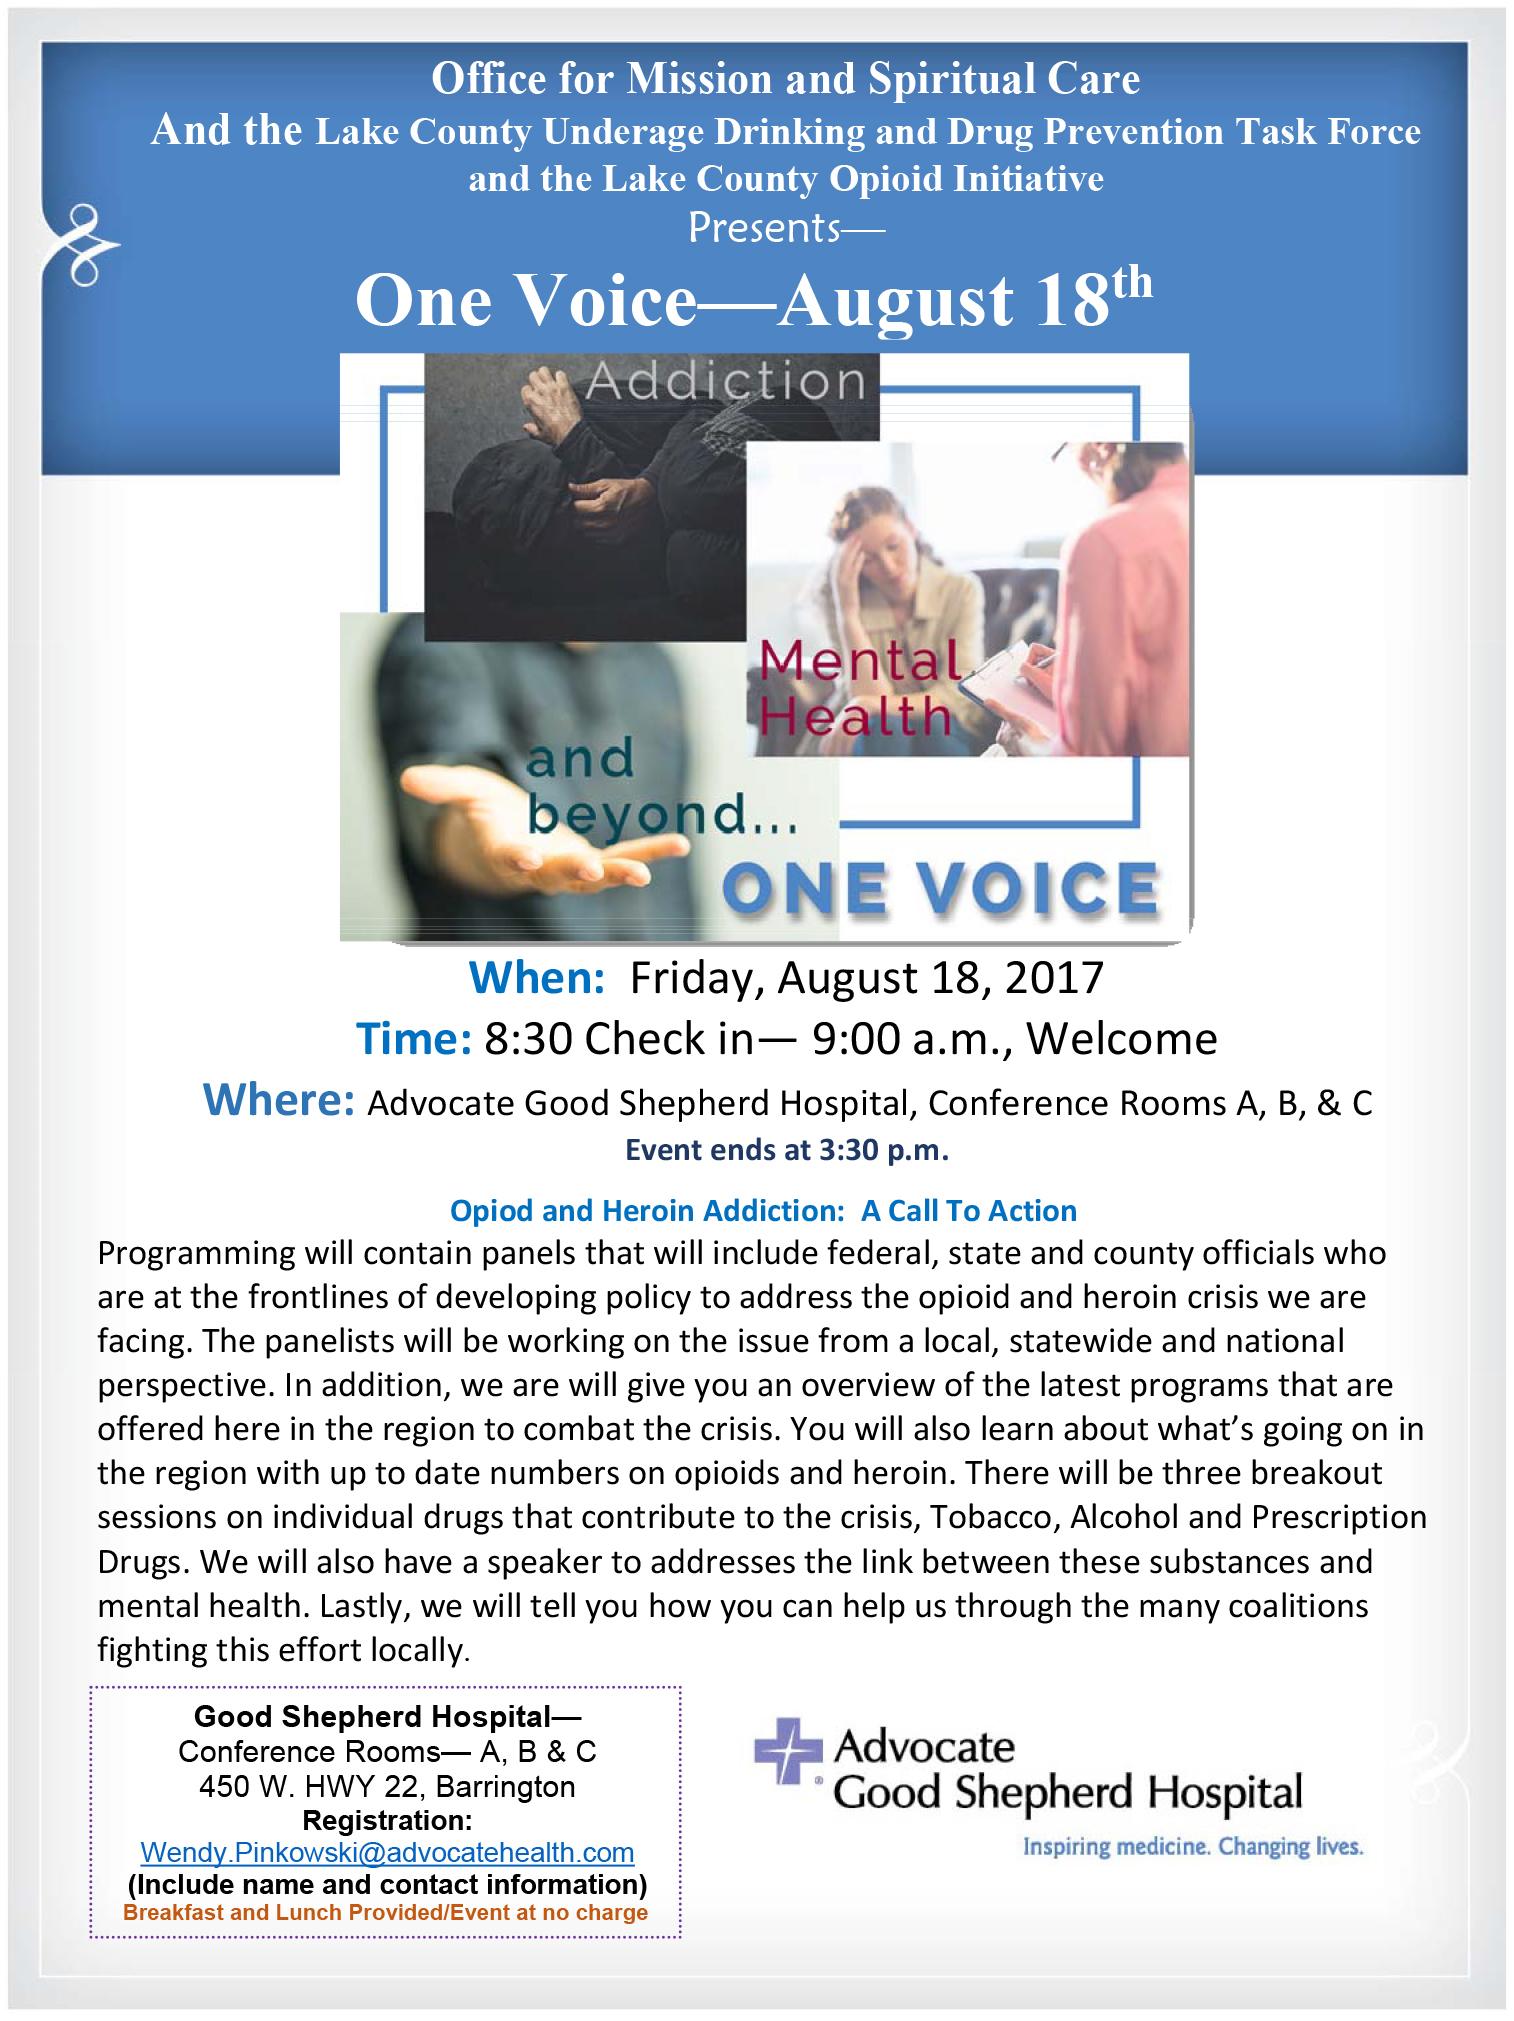 One voice august 18 2017 iazp7a